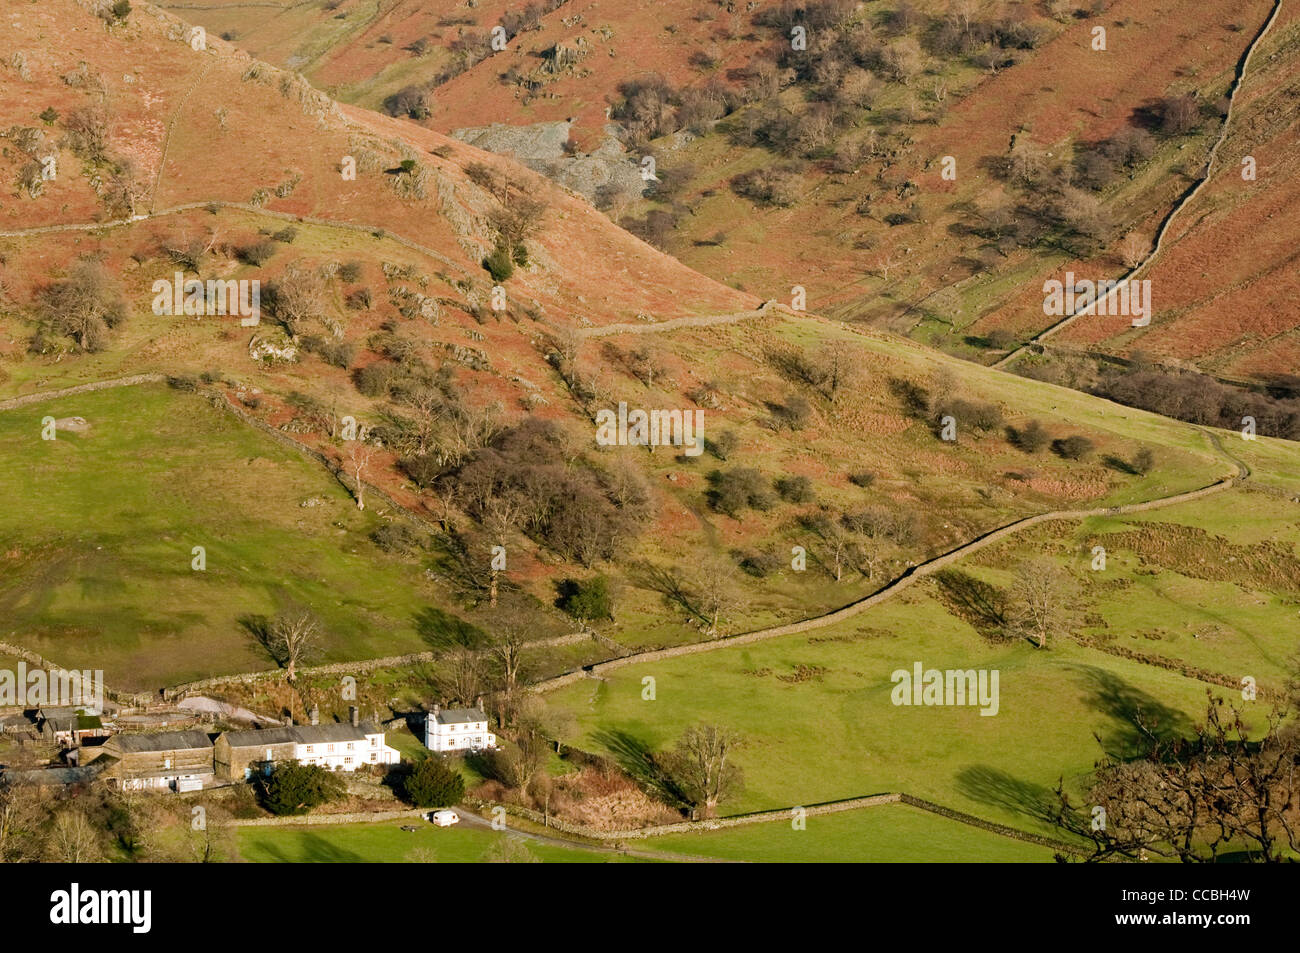 Upper Troutbeck Valley landscape in the Lake District National Park Cumbria - Stock Image